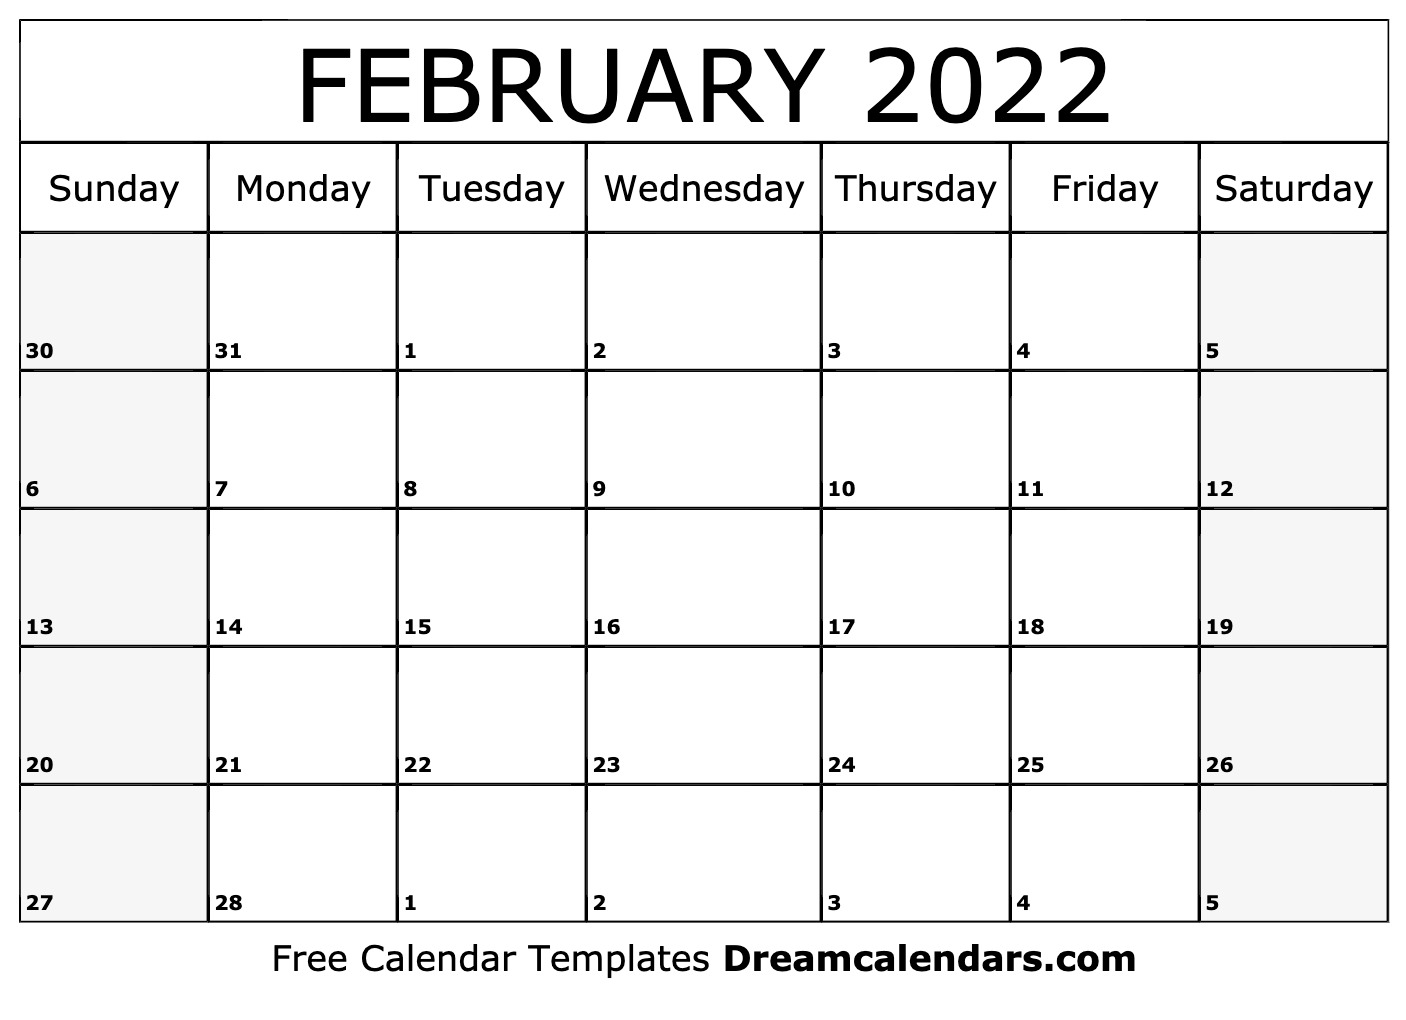 Feb 2022 Calendar With Holidays.The Hot Oil February Calendar 2022 February 2022 Calendar With Holidays United States You Can Select And Print A Calendar Of The Whole Year Instead Of Month